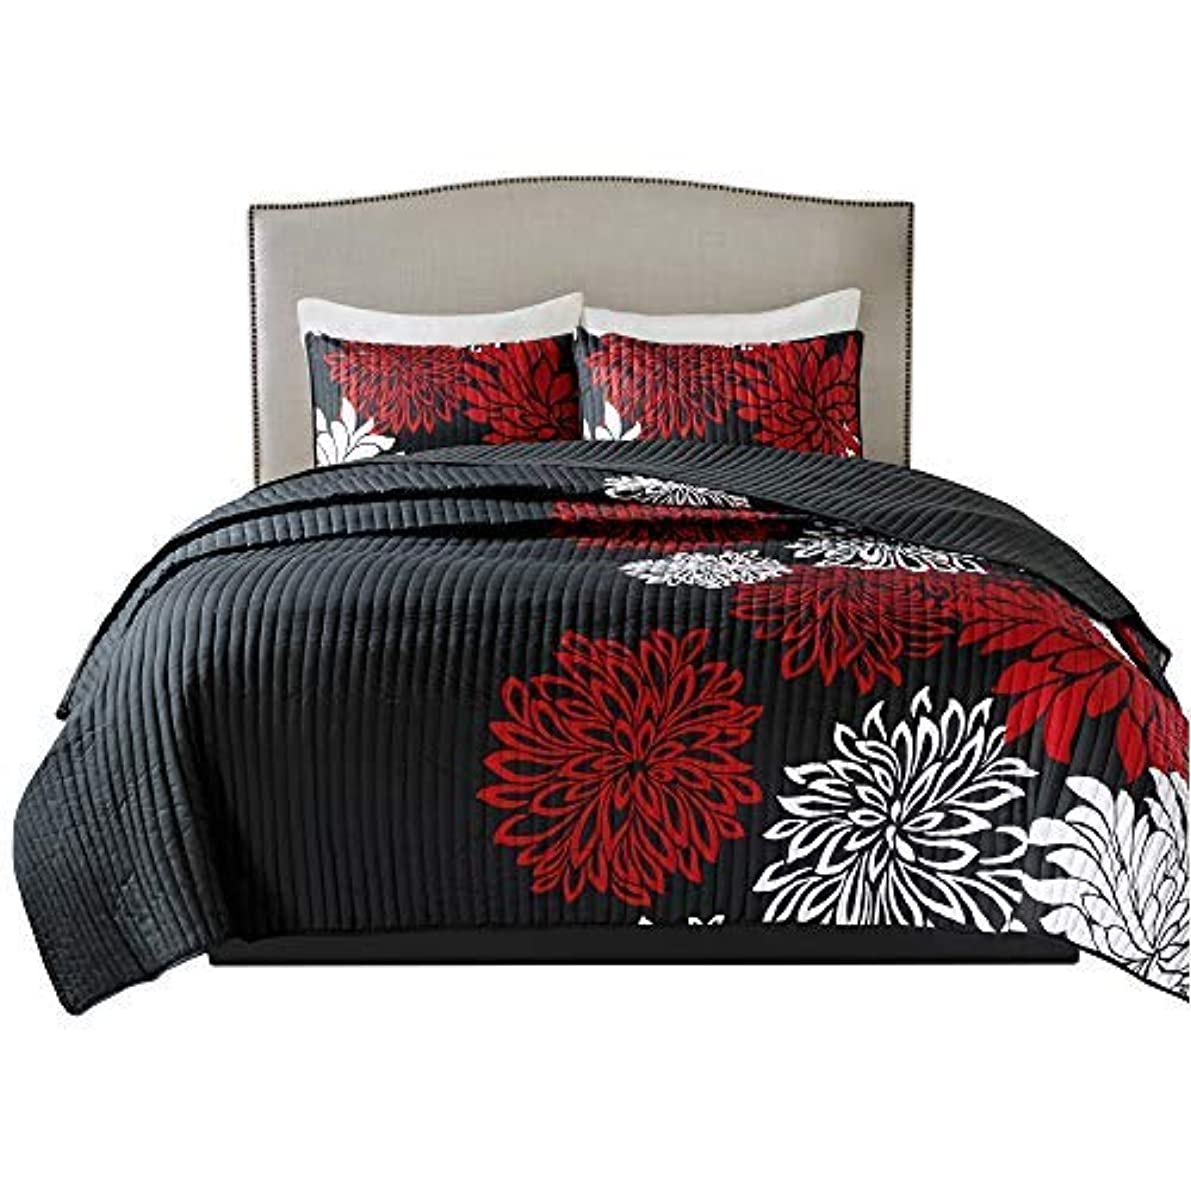 Comfort Spaces Enya 3 Piece Quilt Coverlet Bedspread Ultra Soft Floral Printed Pattern Bedding Set, Full/Queen, Black-Red